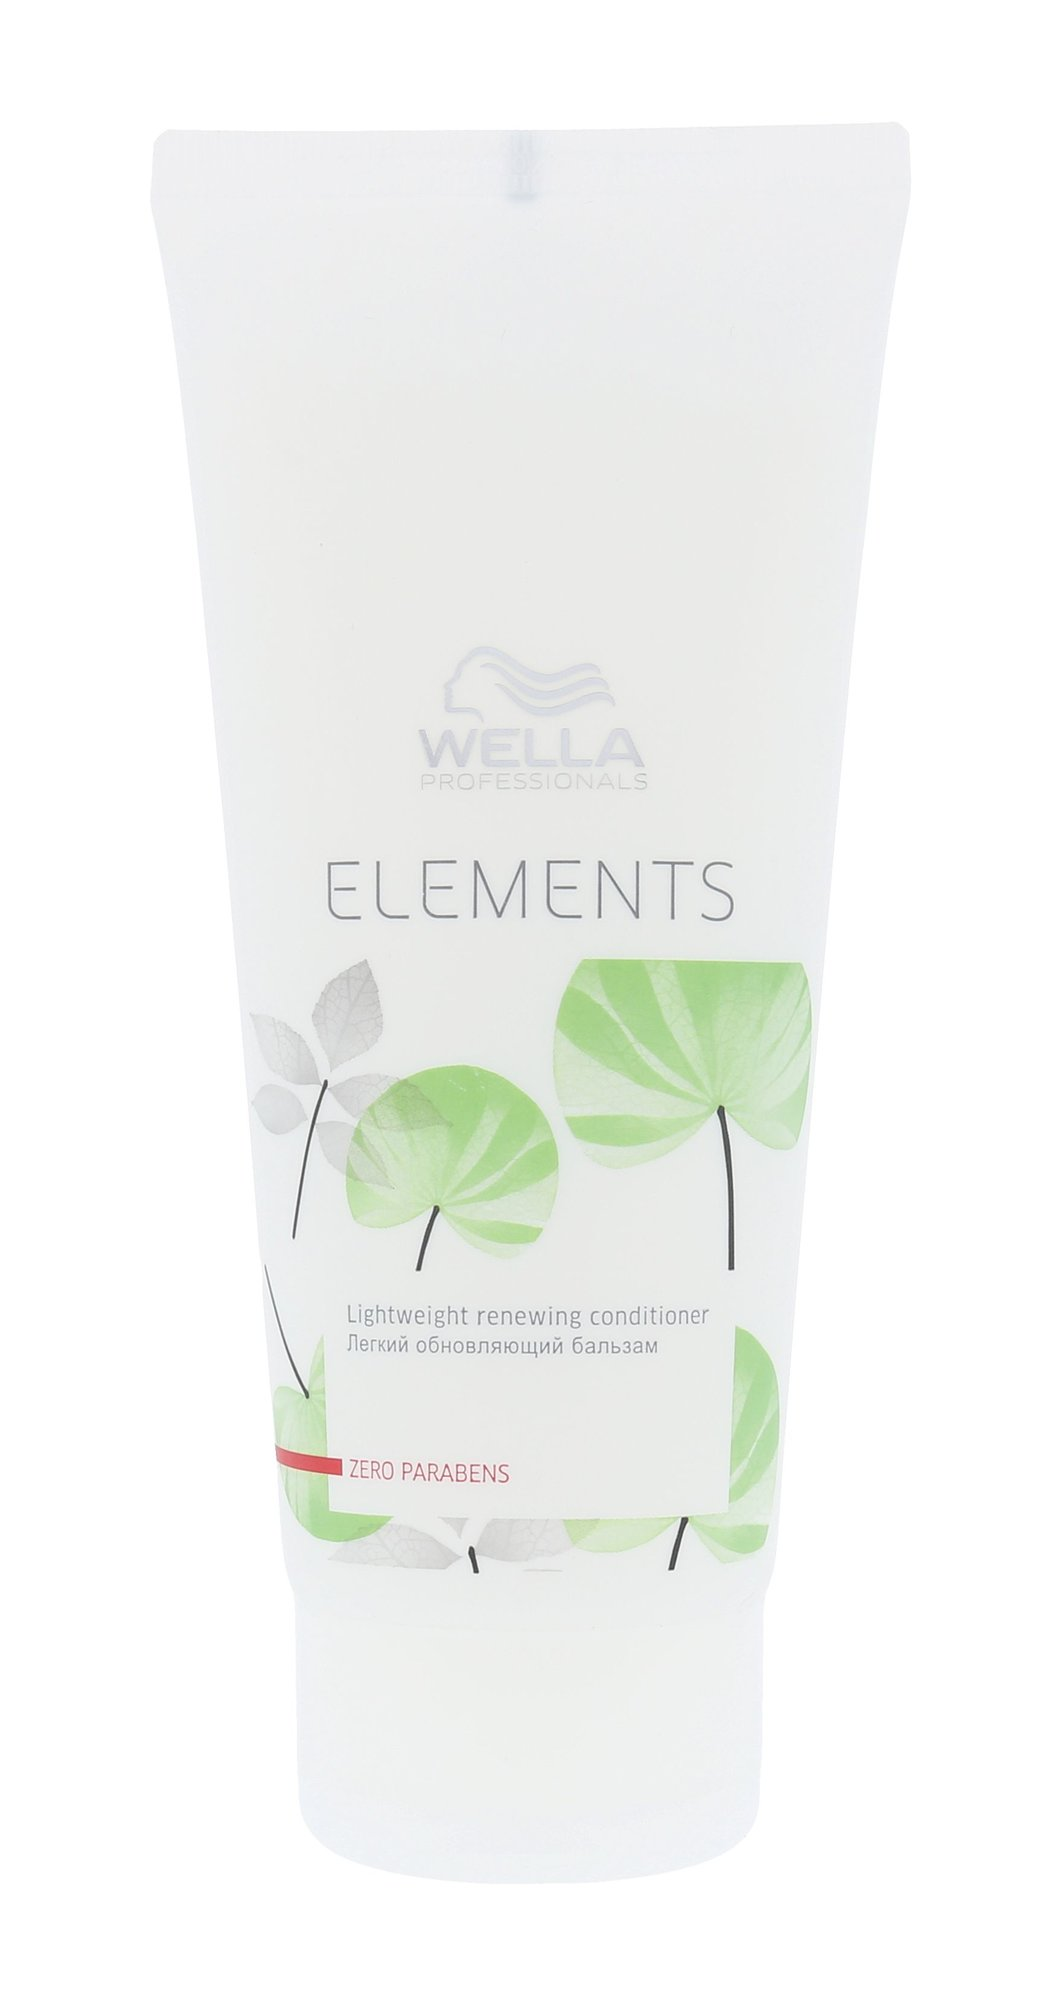 Wella Elements Lightweight Renewing Conditioner Cosmetic 200ml